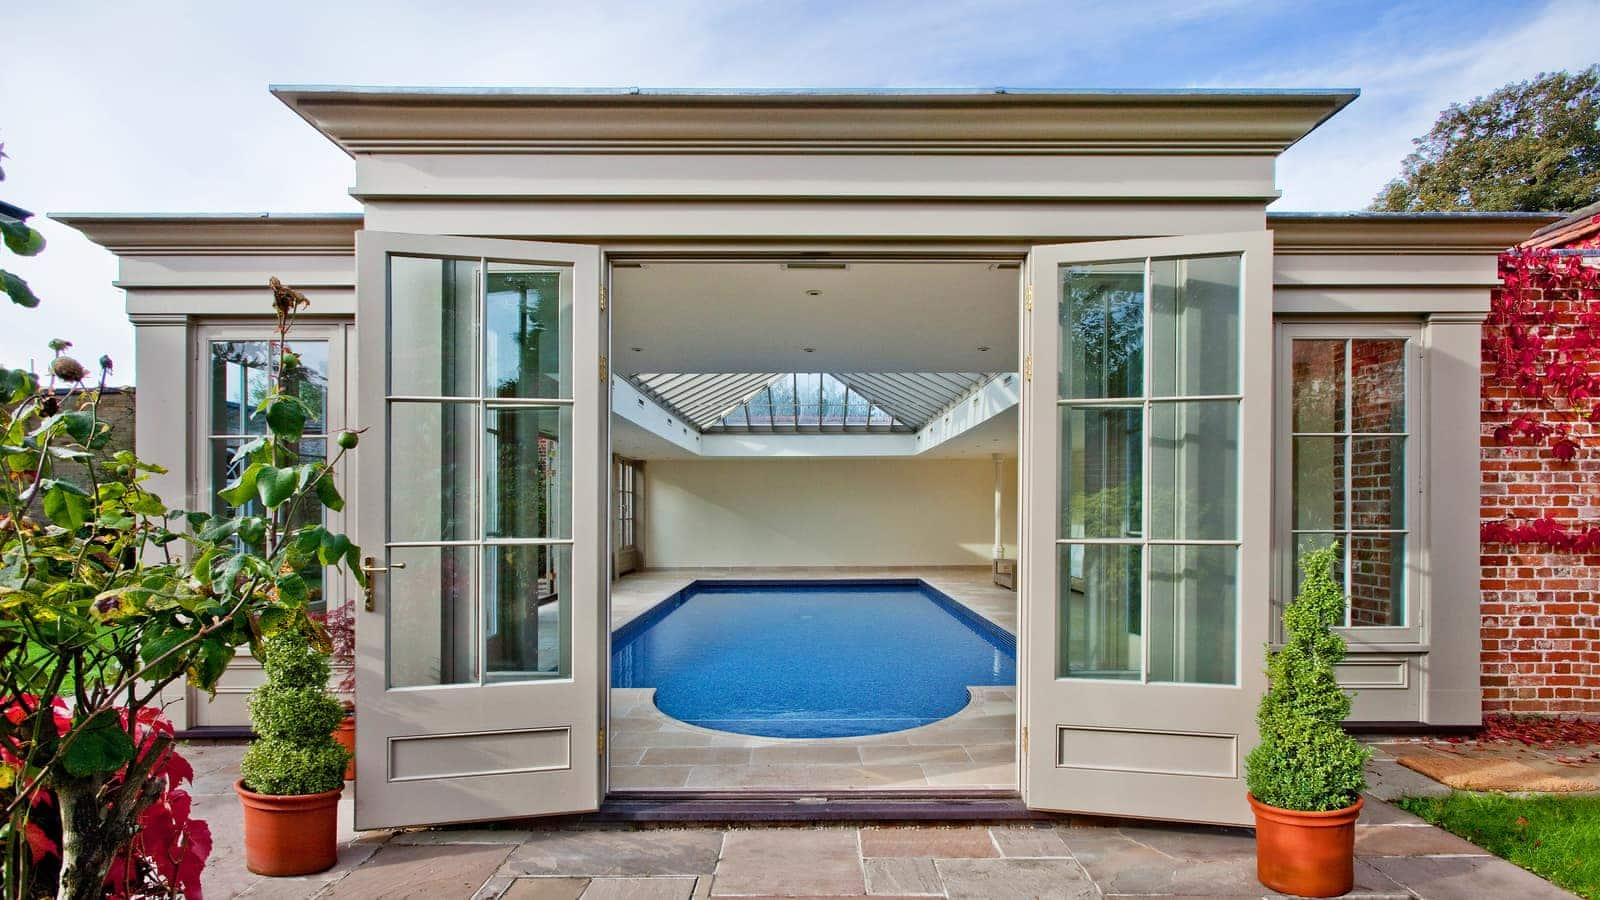 Pool house with wide opening doors allowing a cool breeze into the room